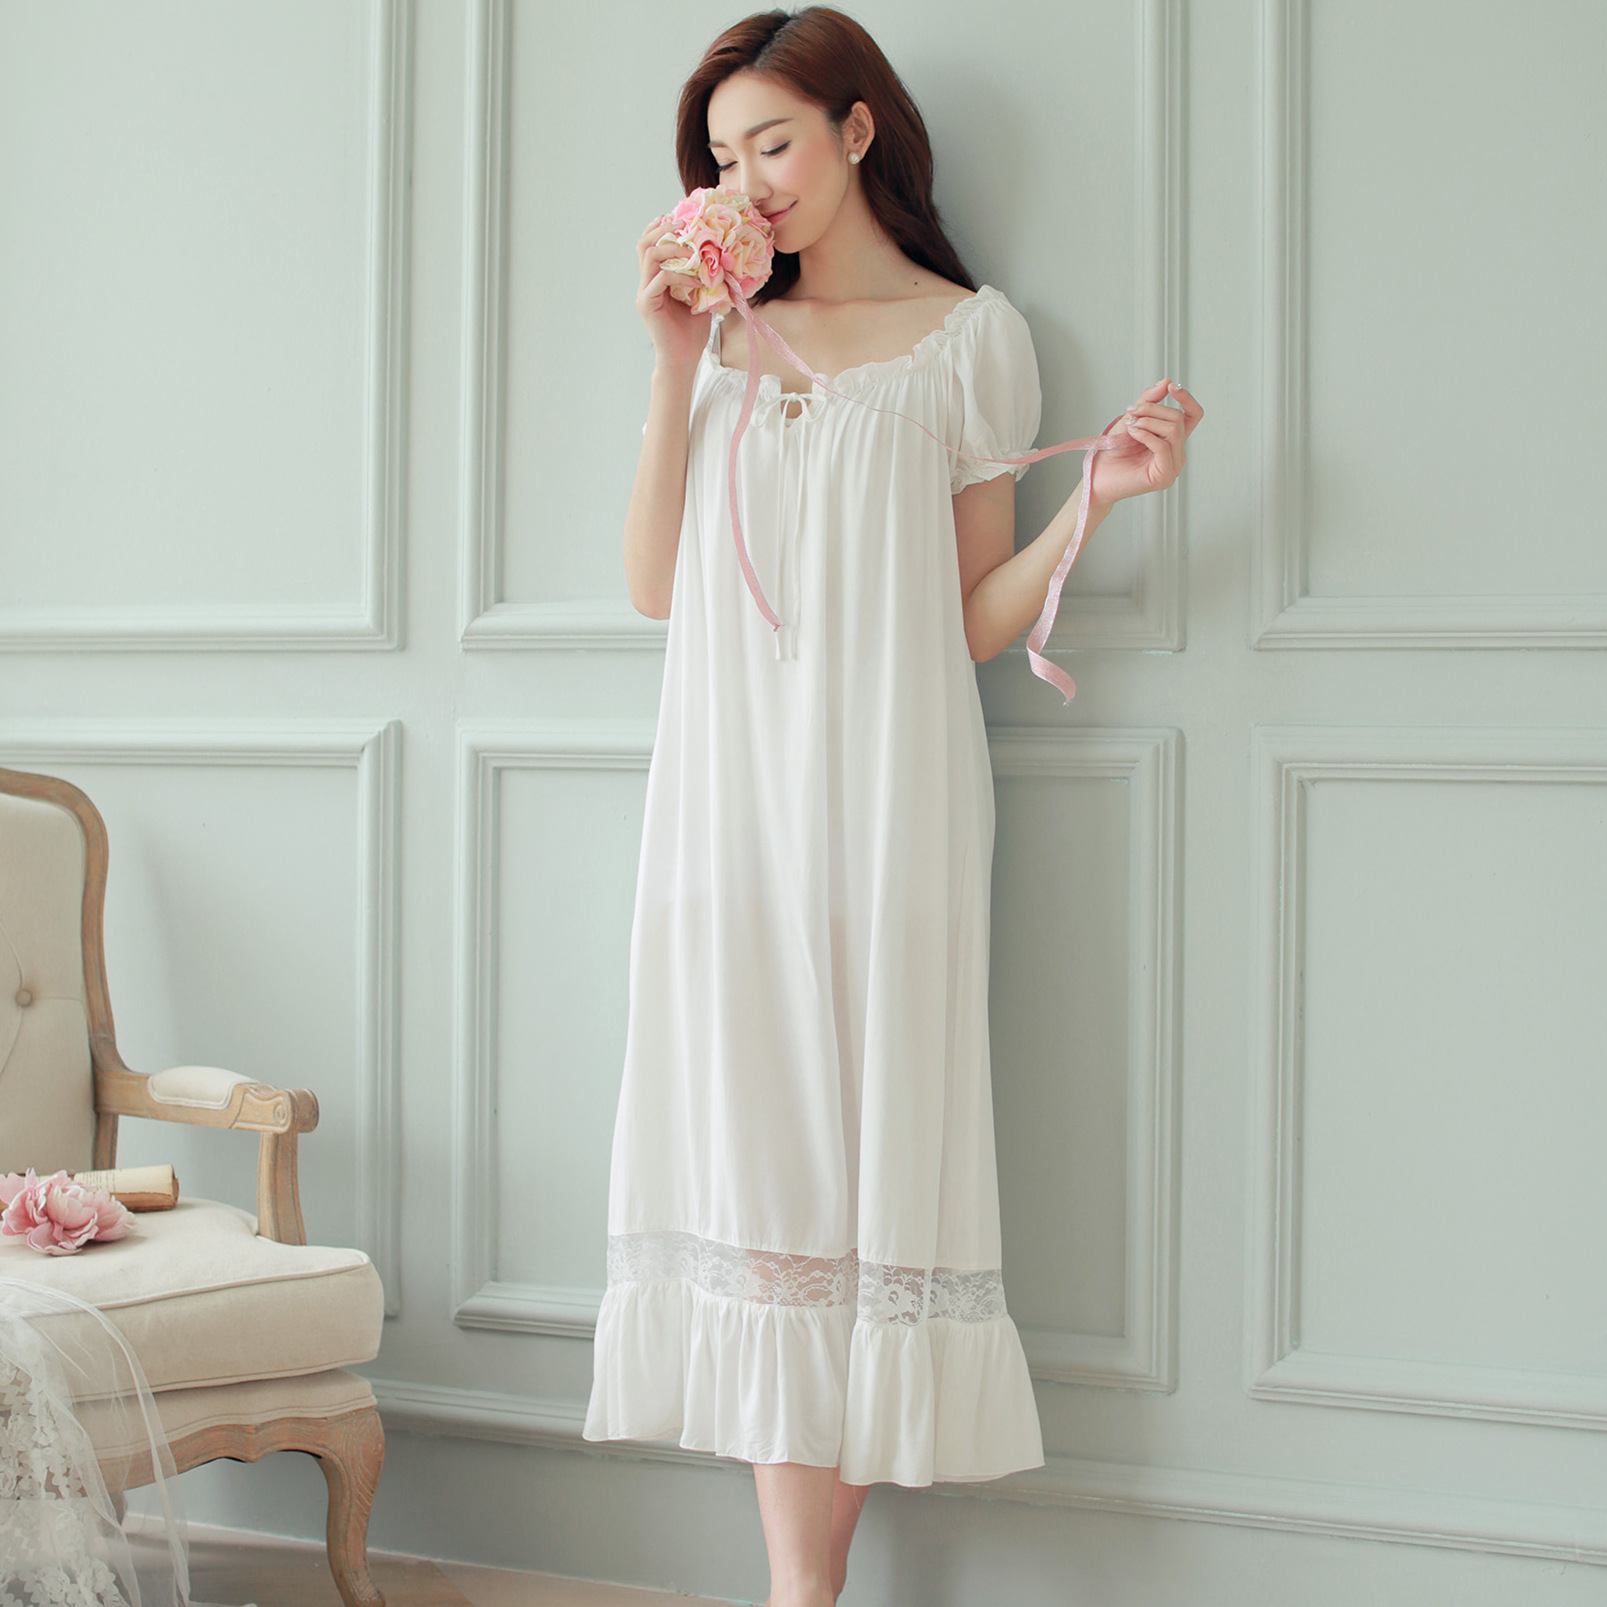 Night Dress Long White Nightgown Women Nightgowns Cotton Short Sleeve Sexy Nightwear Vestido Vintage Sleepwear Pijama Nightdress